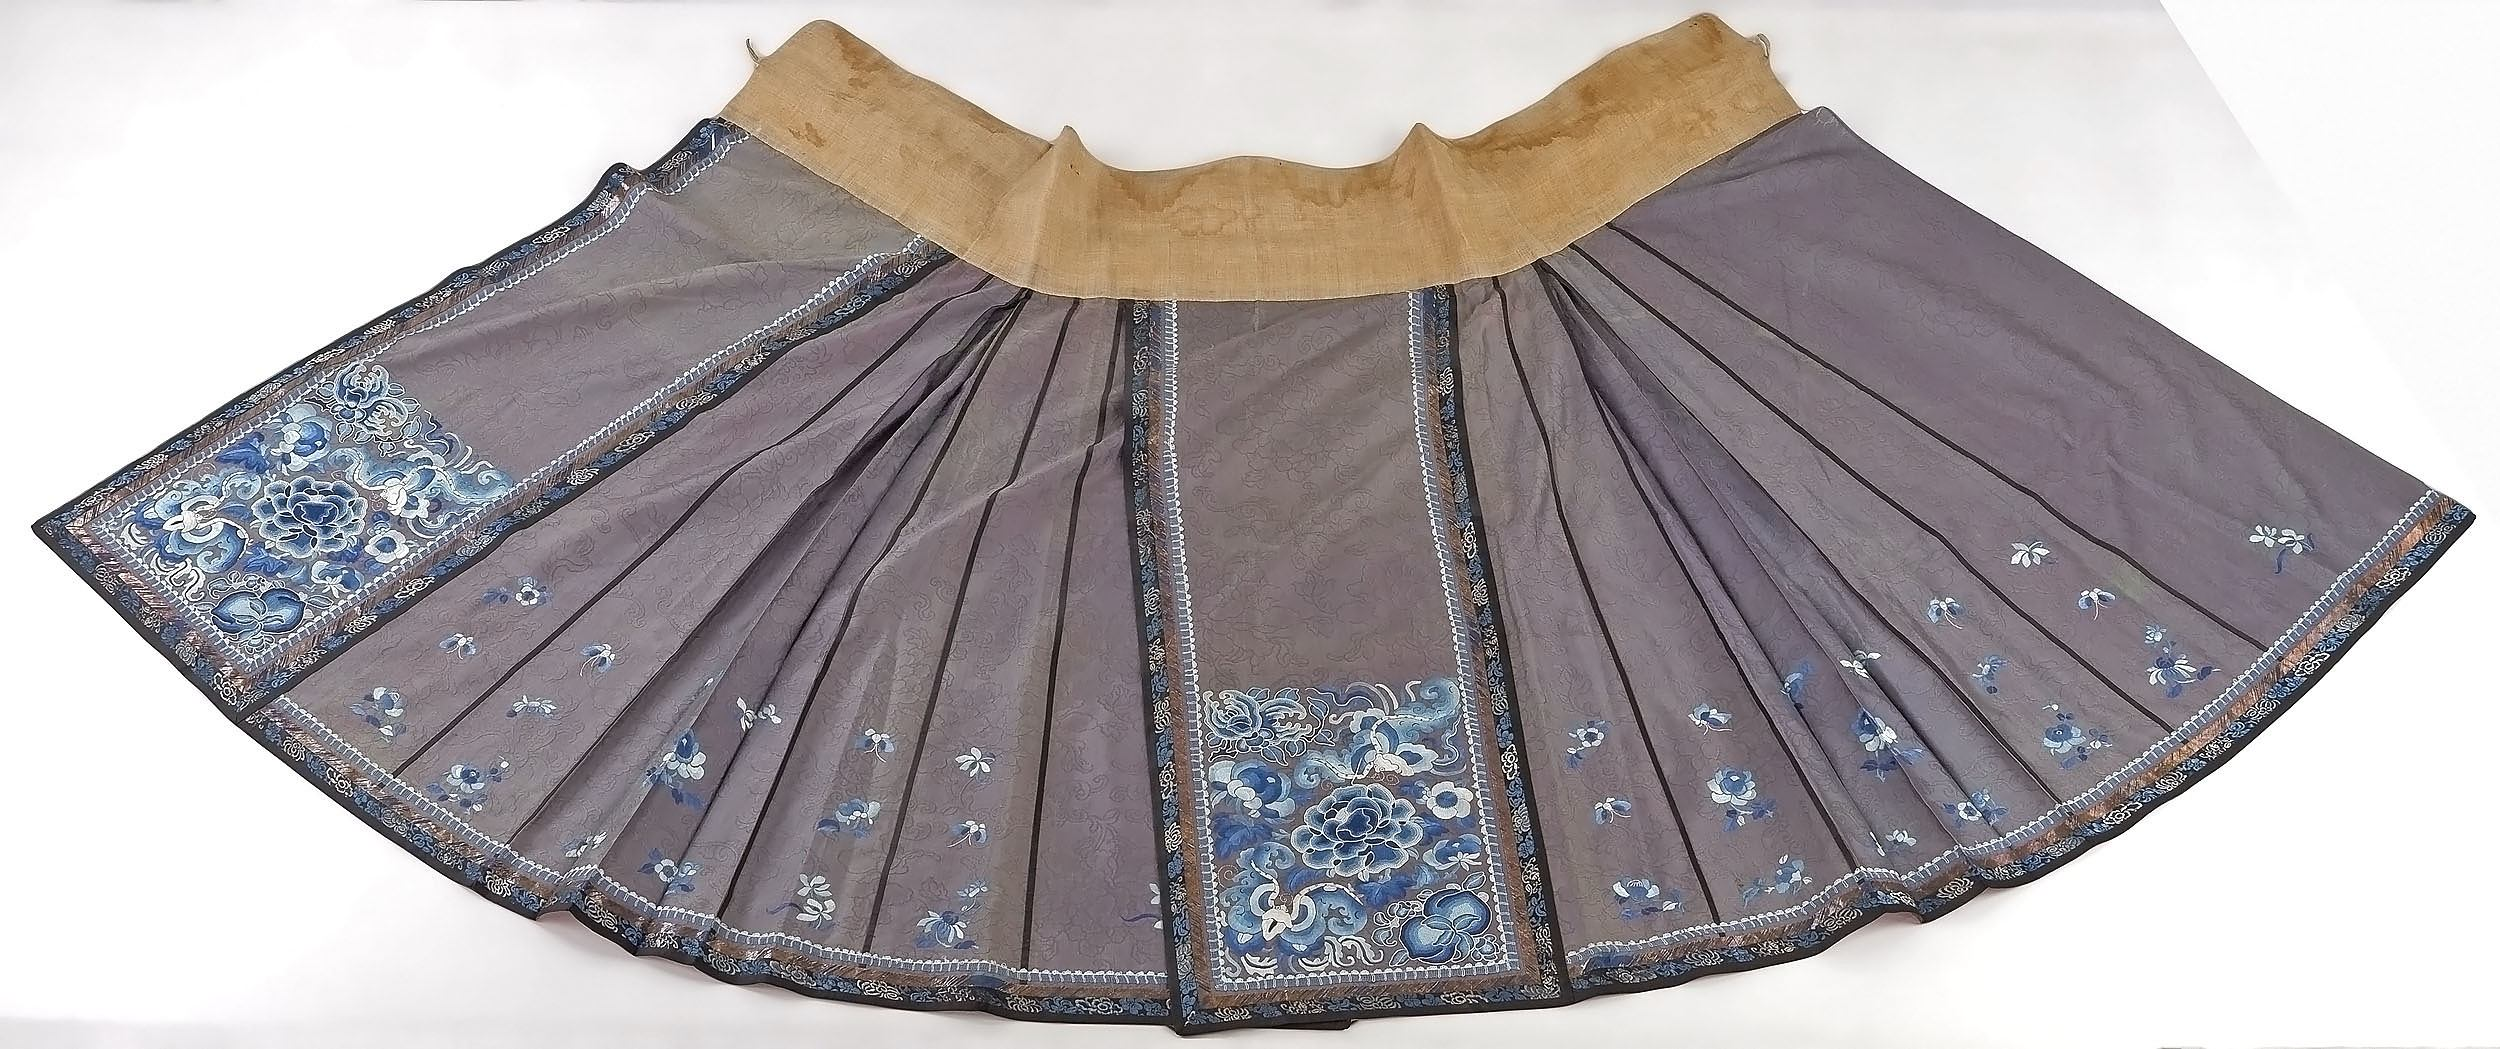 'Chinese Embroidered Grey Silk Damask Skirt with Metal Thread Border, Late 19th Century'